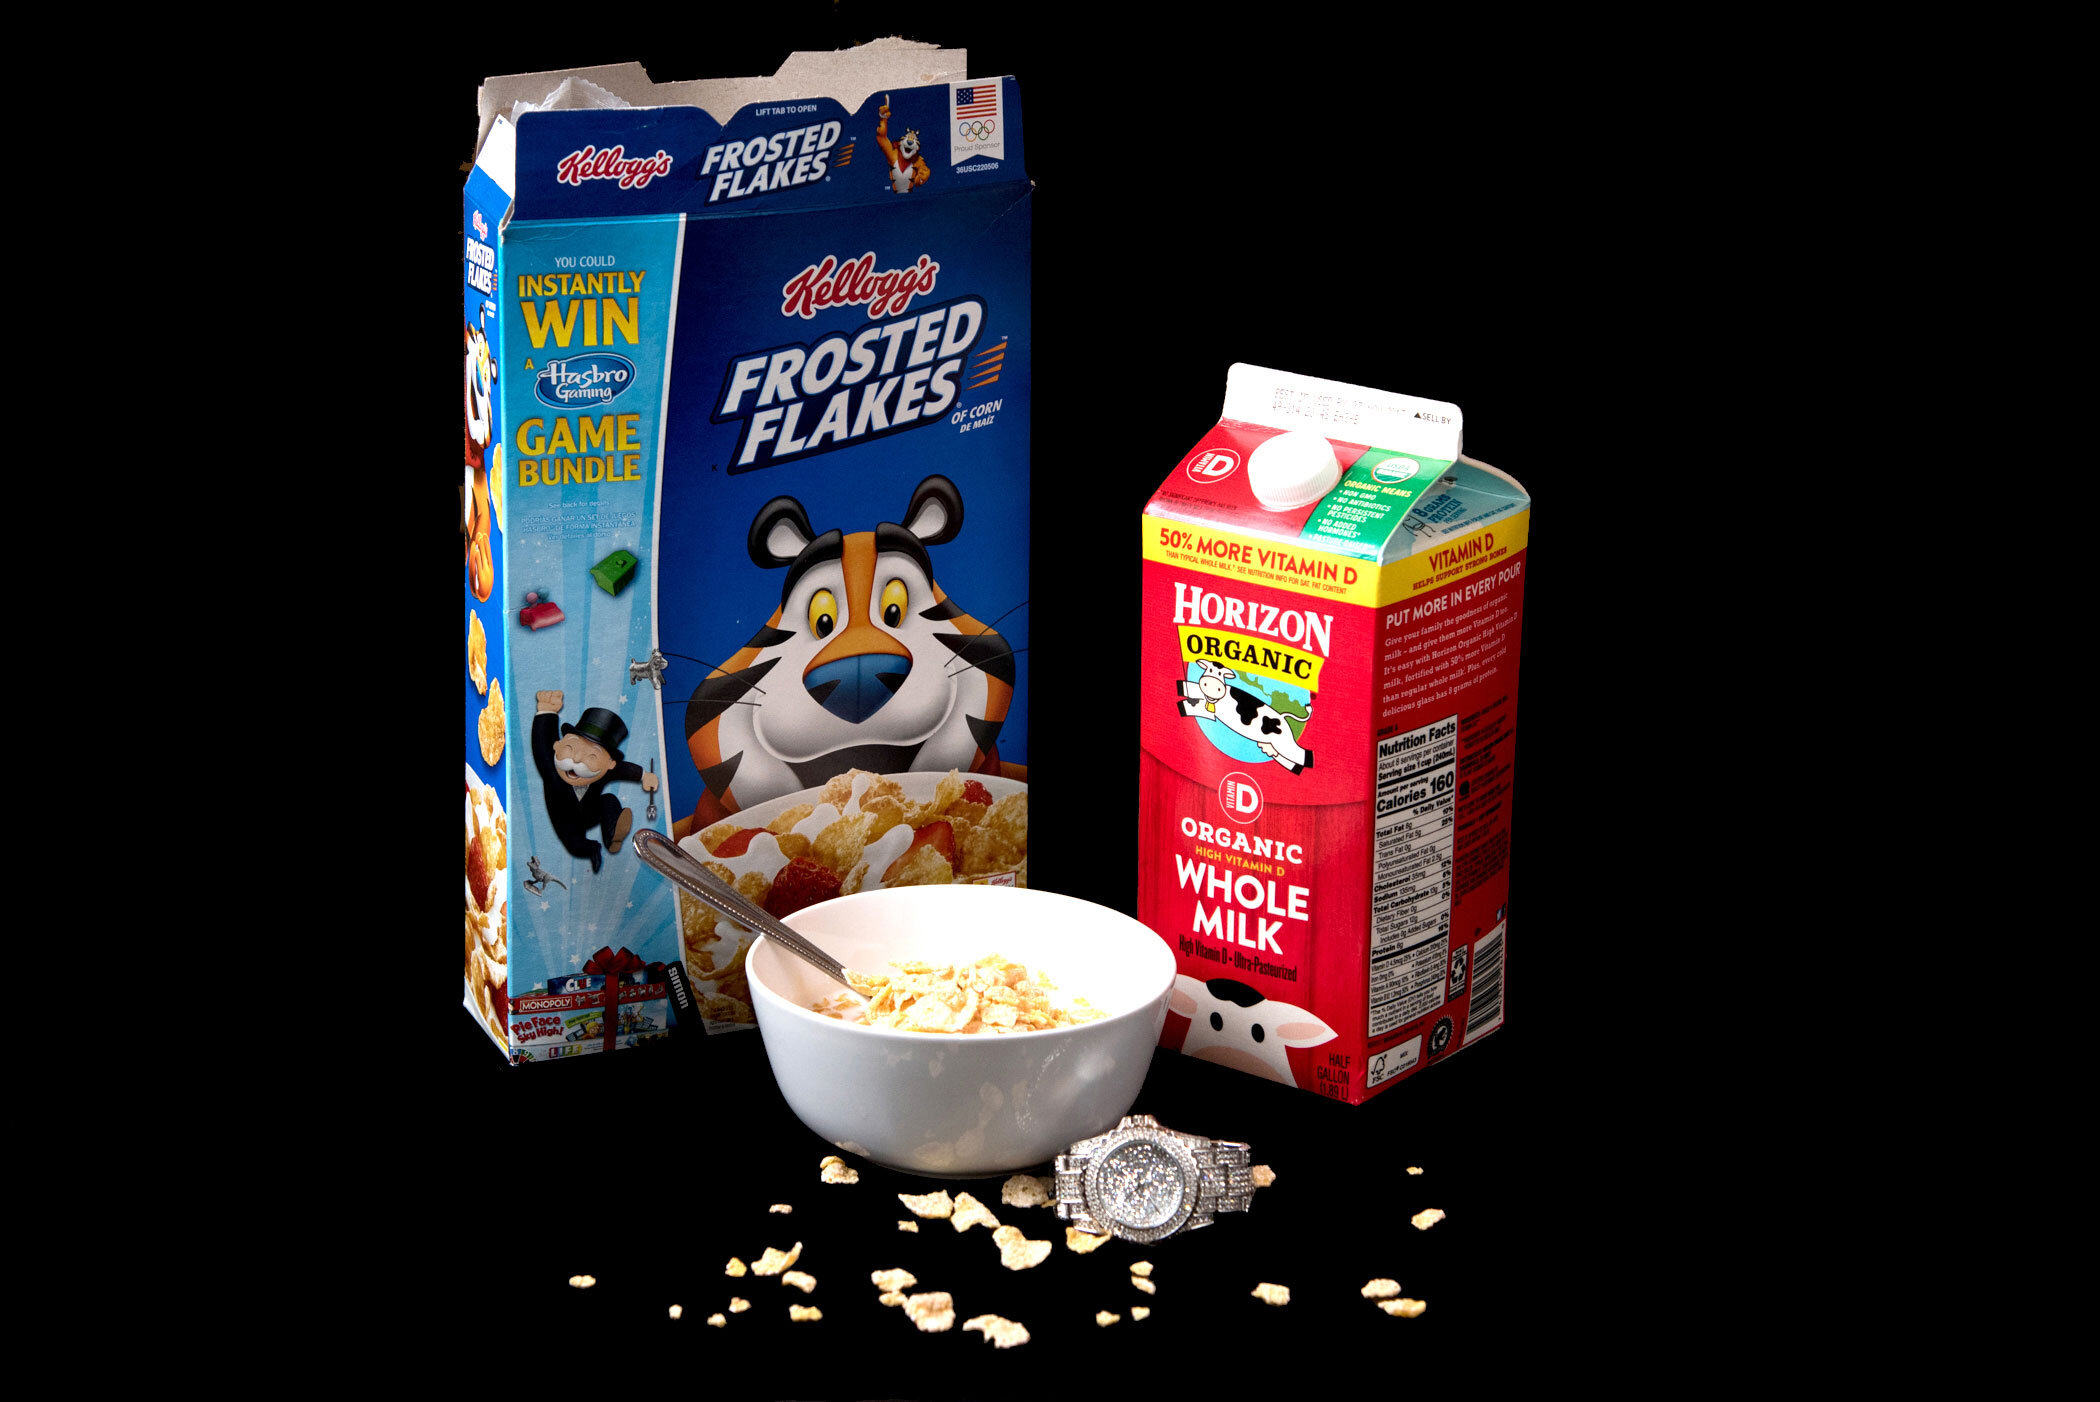 """""""I used to live in the P's, now it's a crib with a gate, Rollie got charms, look like Frosted Flakes"""" - Cardi B, """"Bodak Yellow"""""""